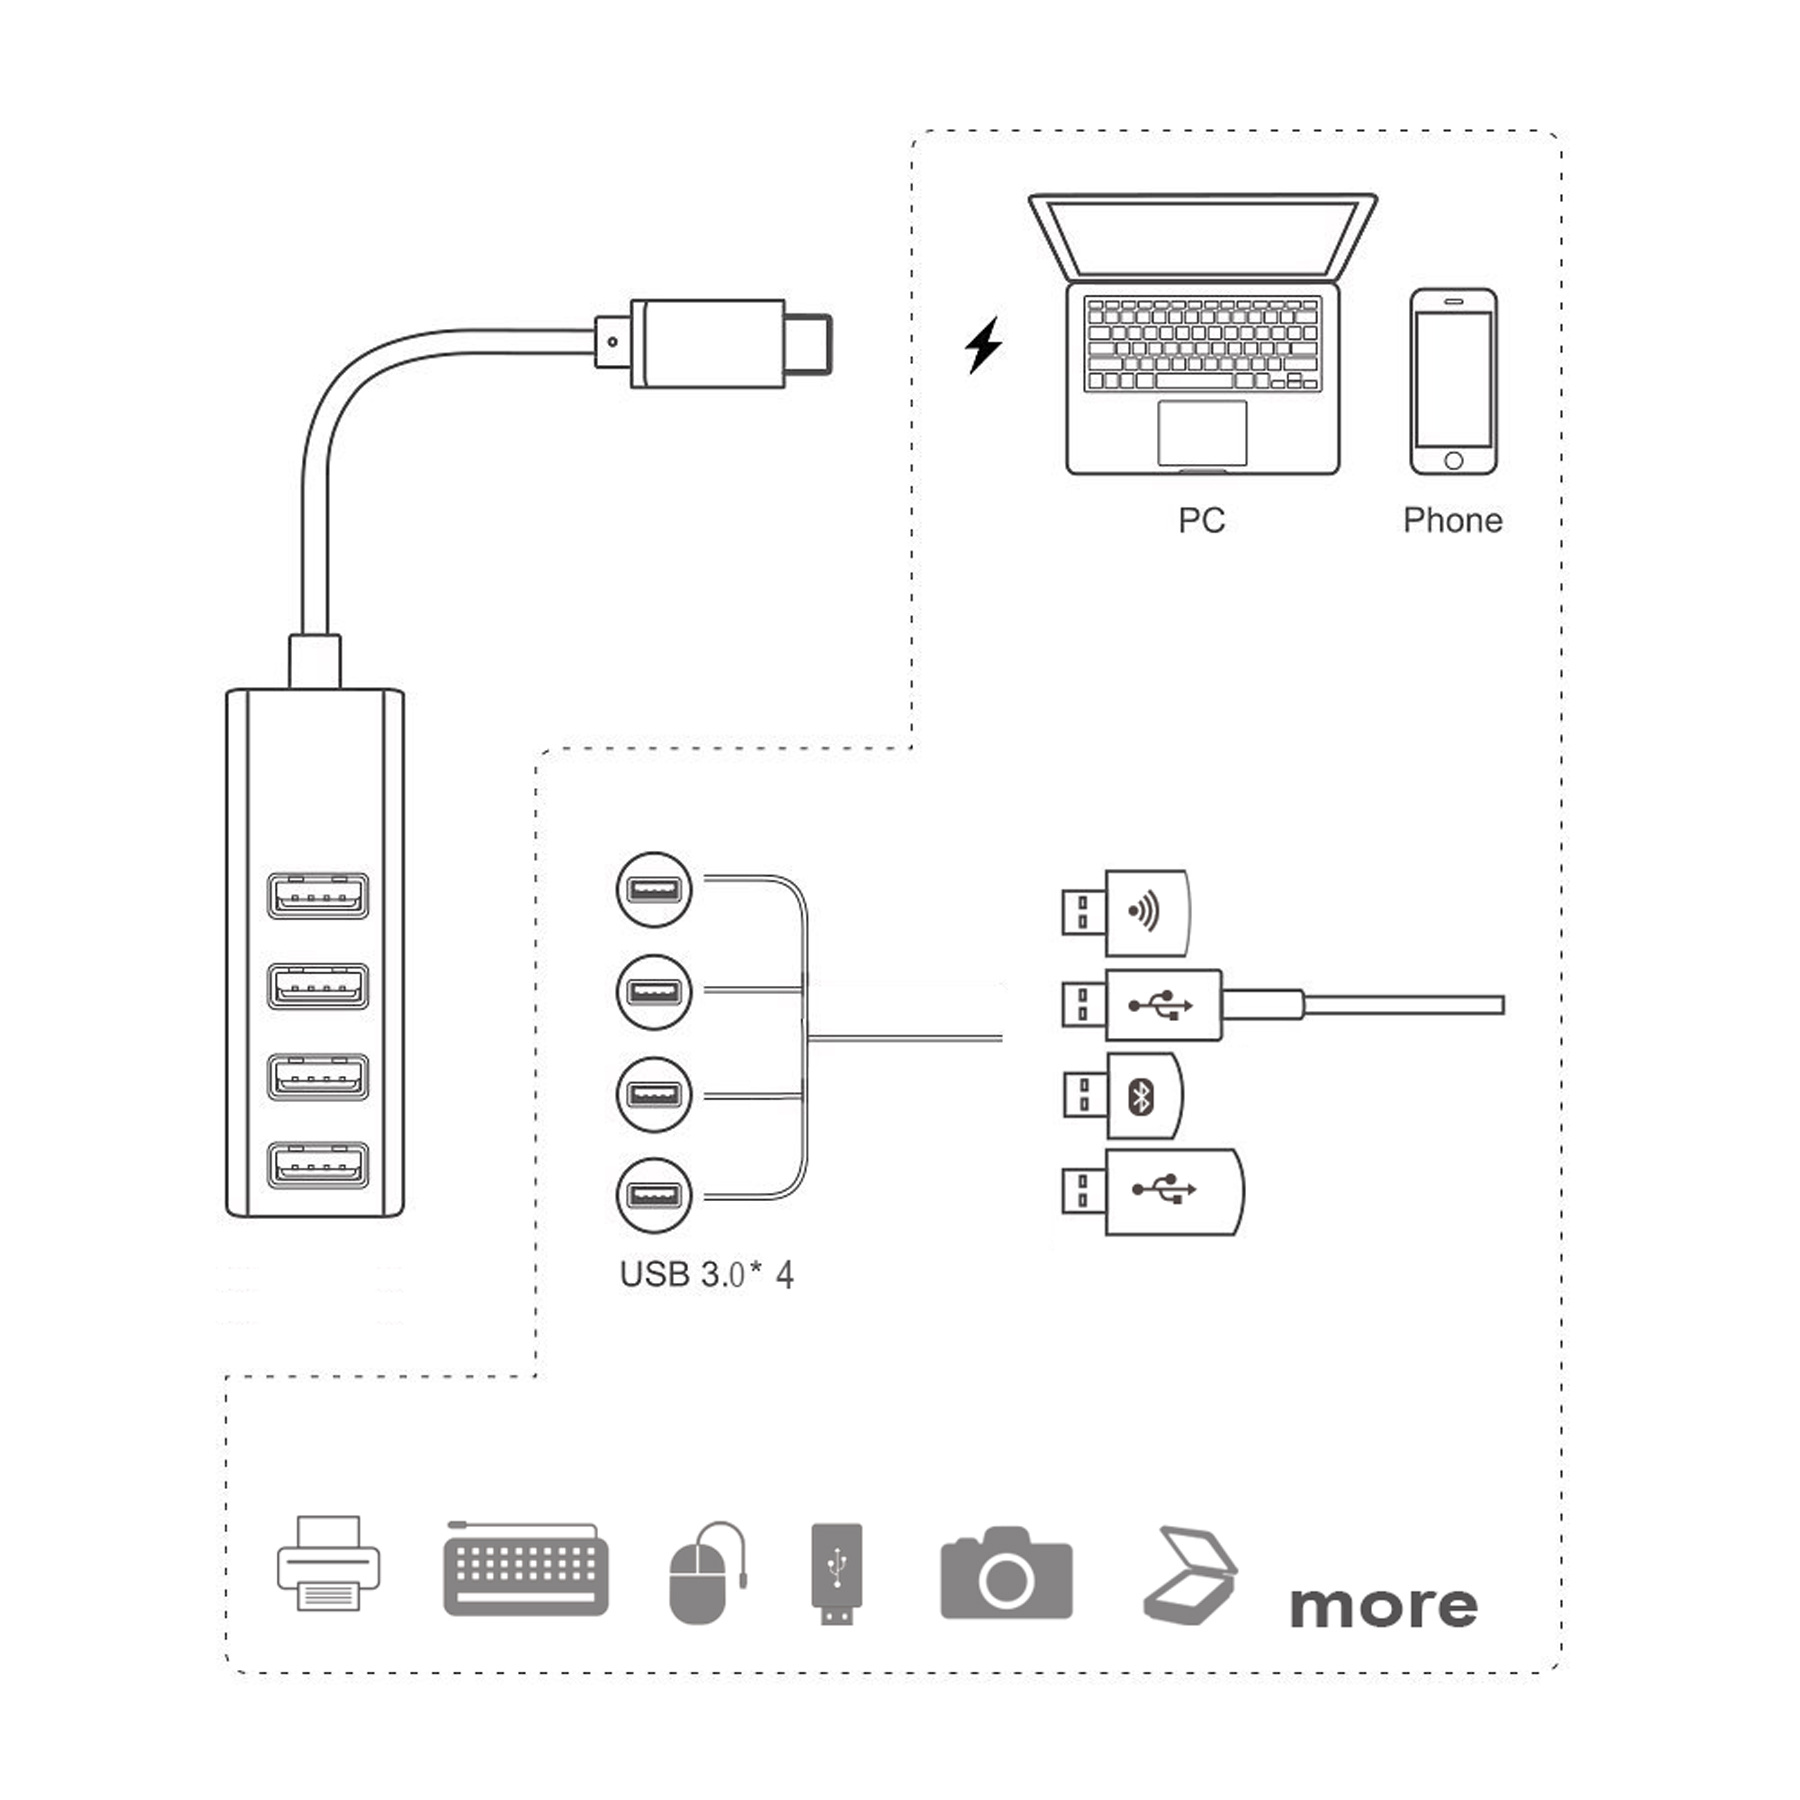 USB-C 3.1 to 4-Port USB3.0 Hub for MacBook 2016, Chromebook Pixel and Others USB USB-C Devices